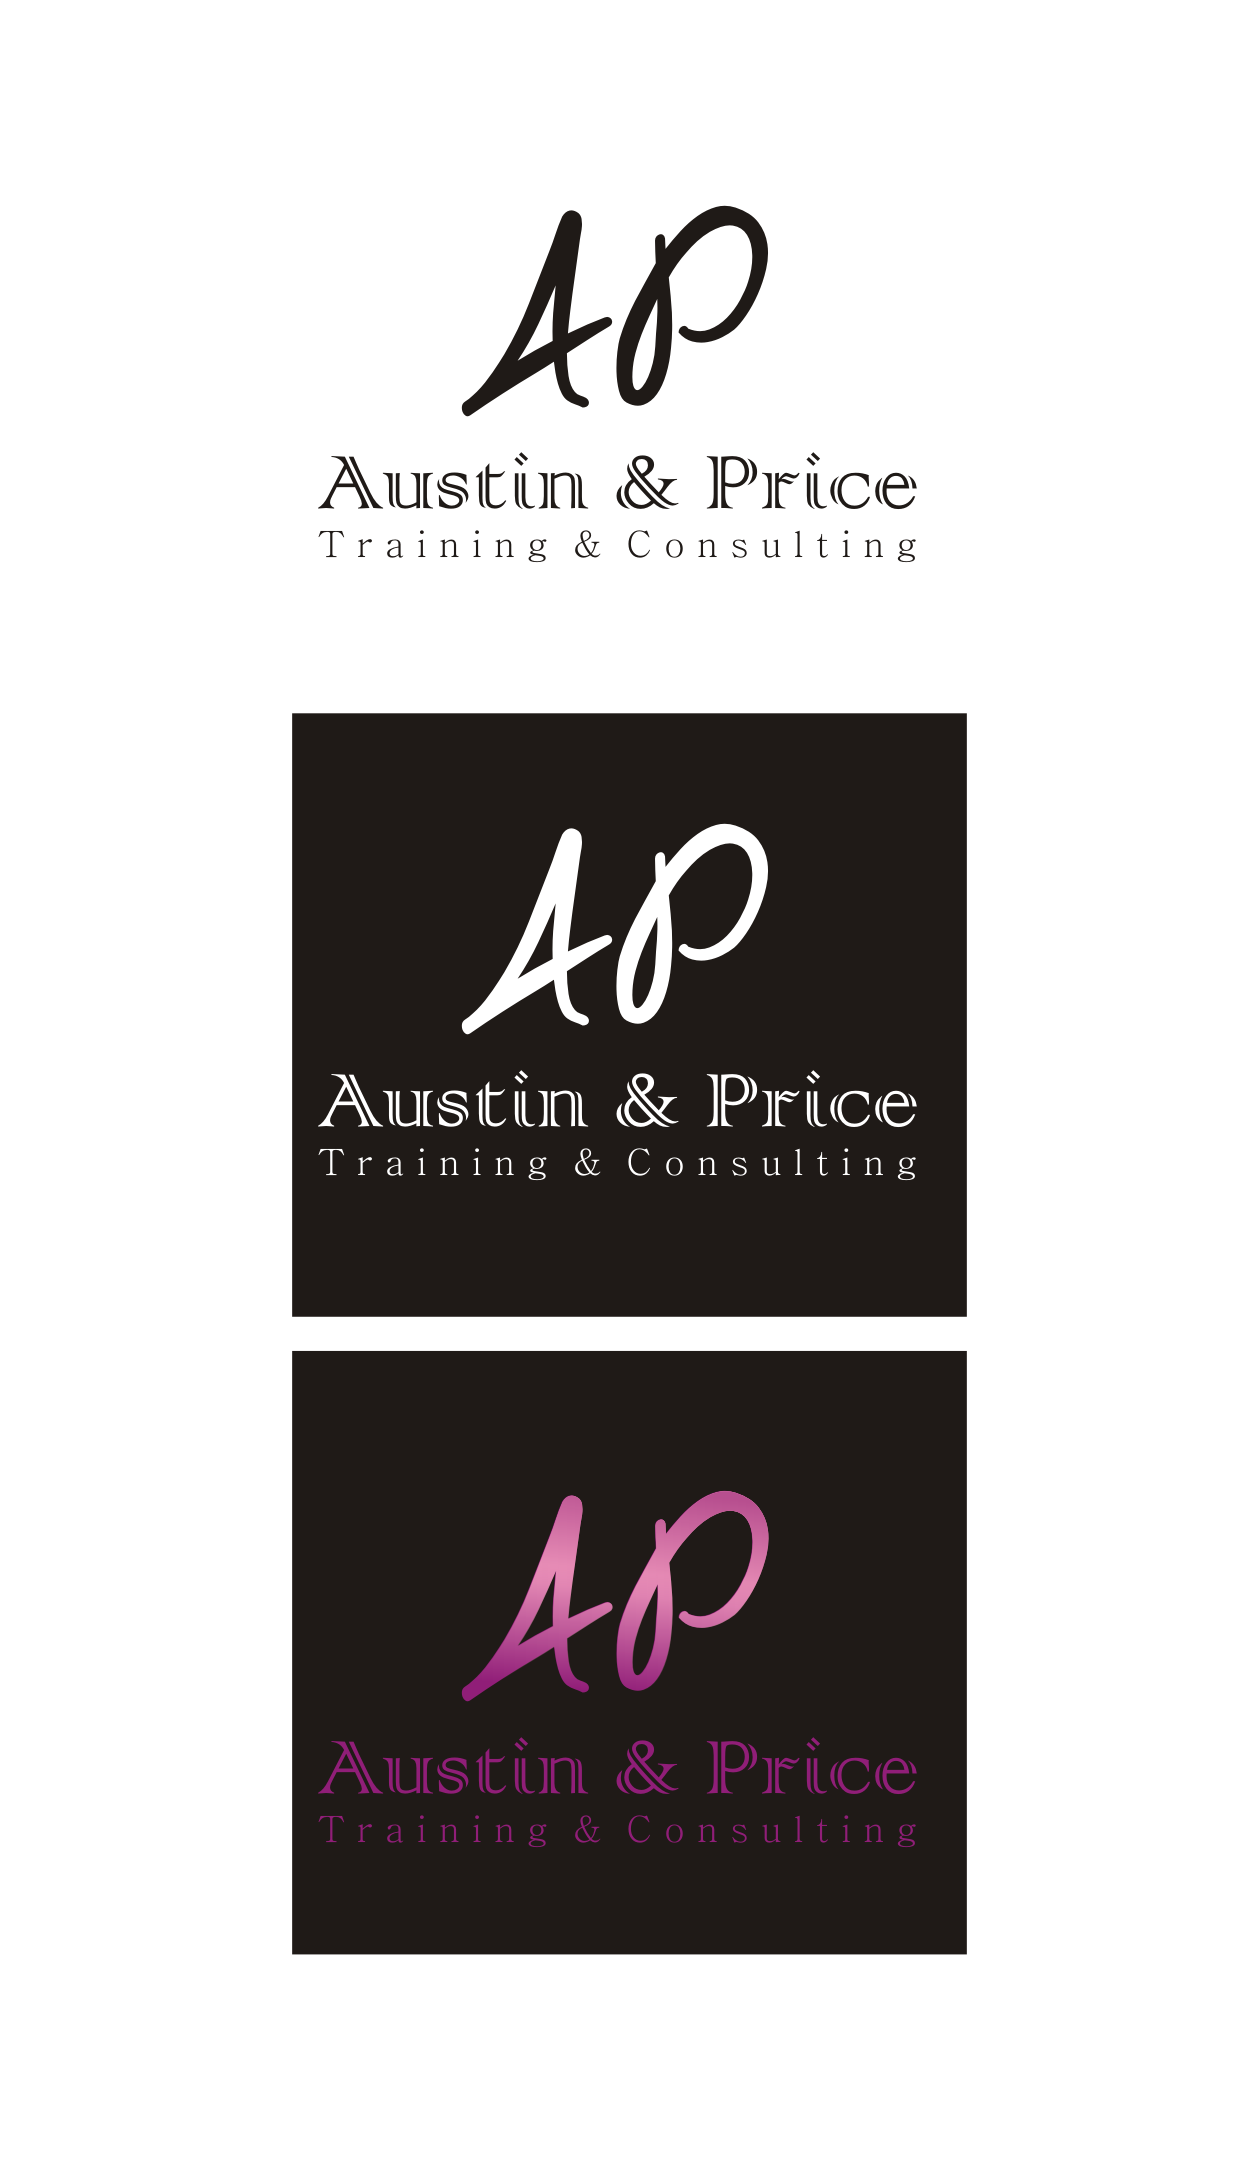 Logo Design by Nthus Nthis - Entry No. 49 in the Logo Design Contest Artistic Logo Design for Austin Price Advisory.